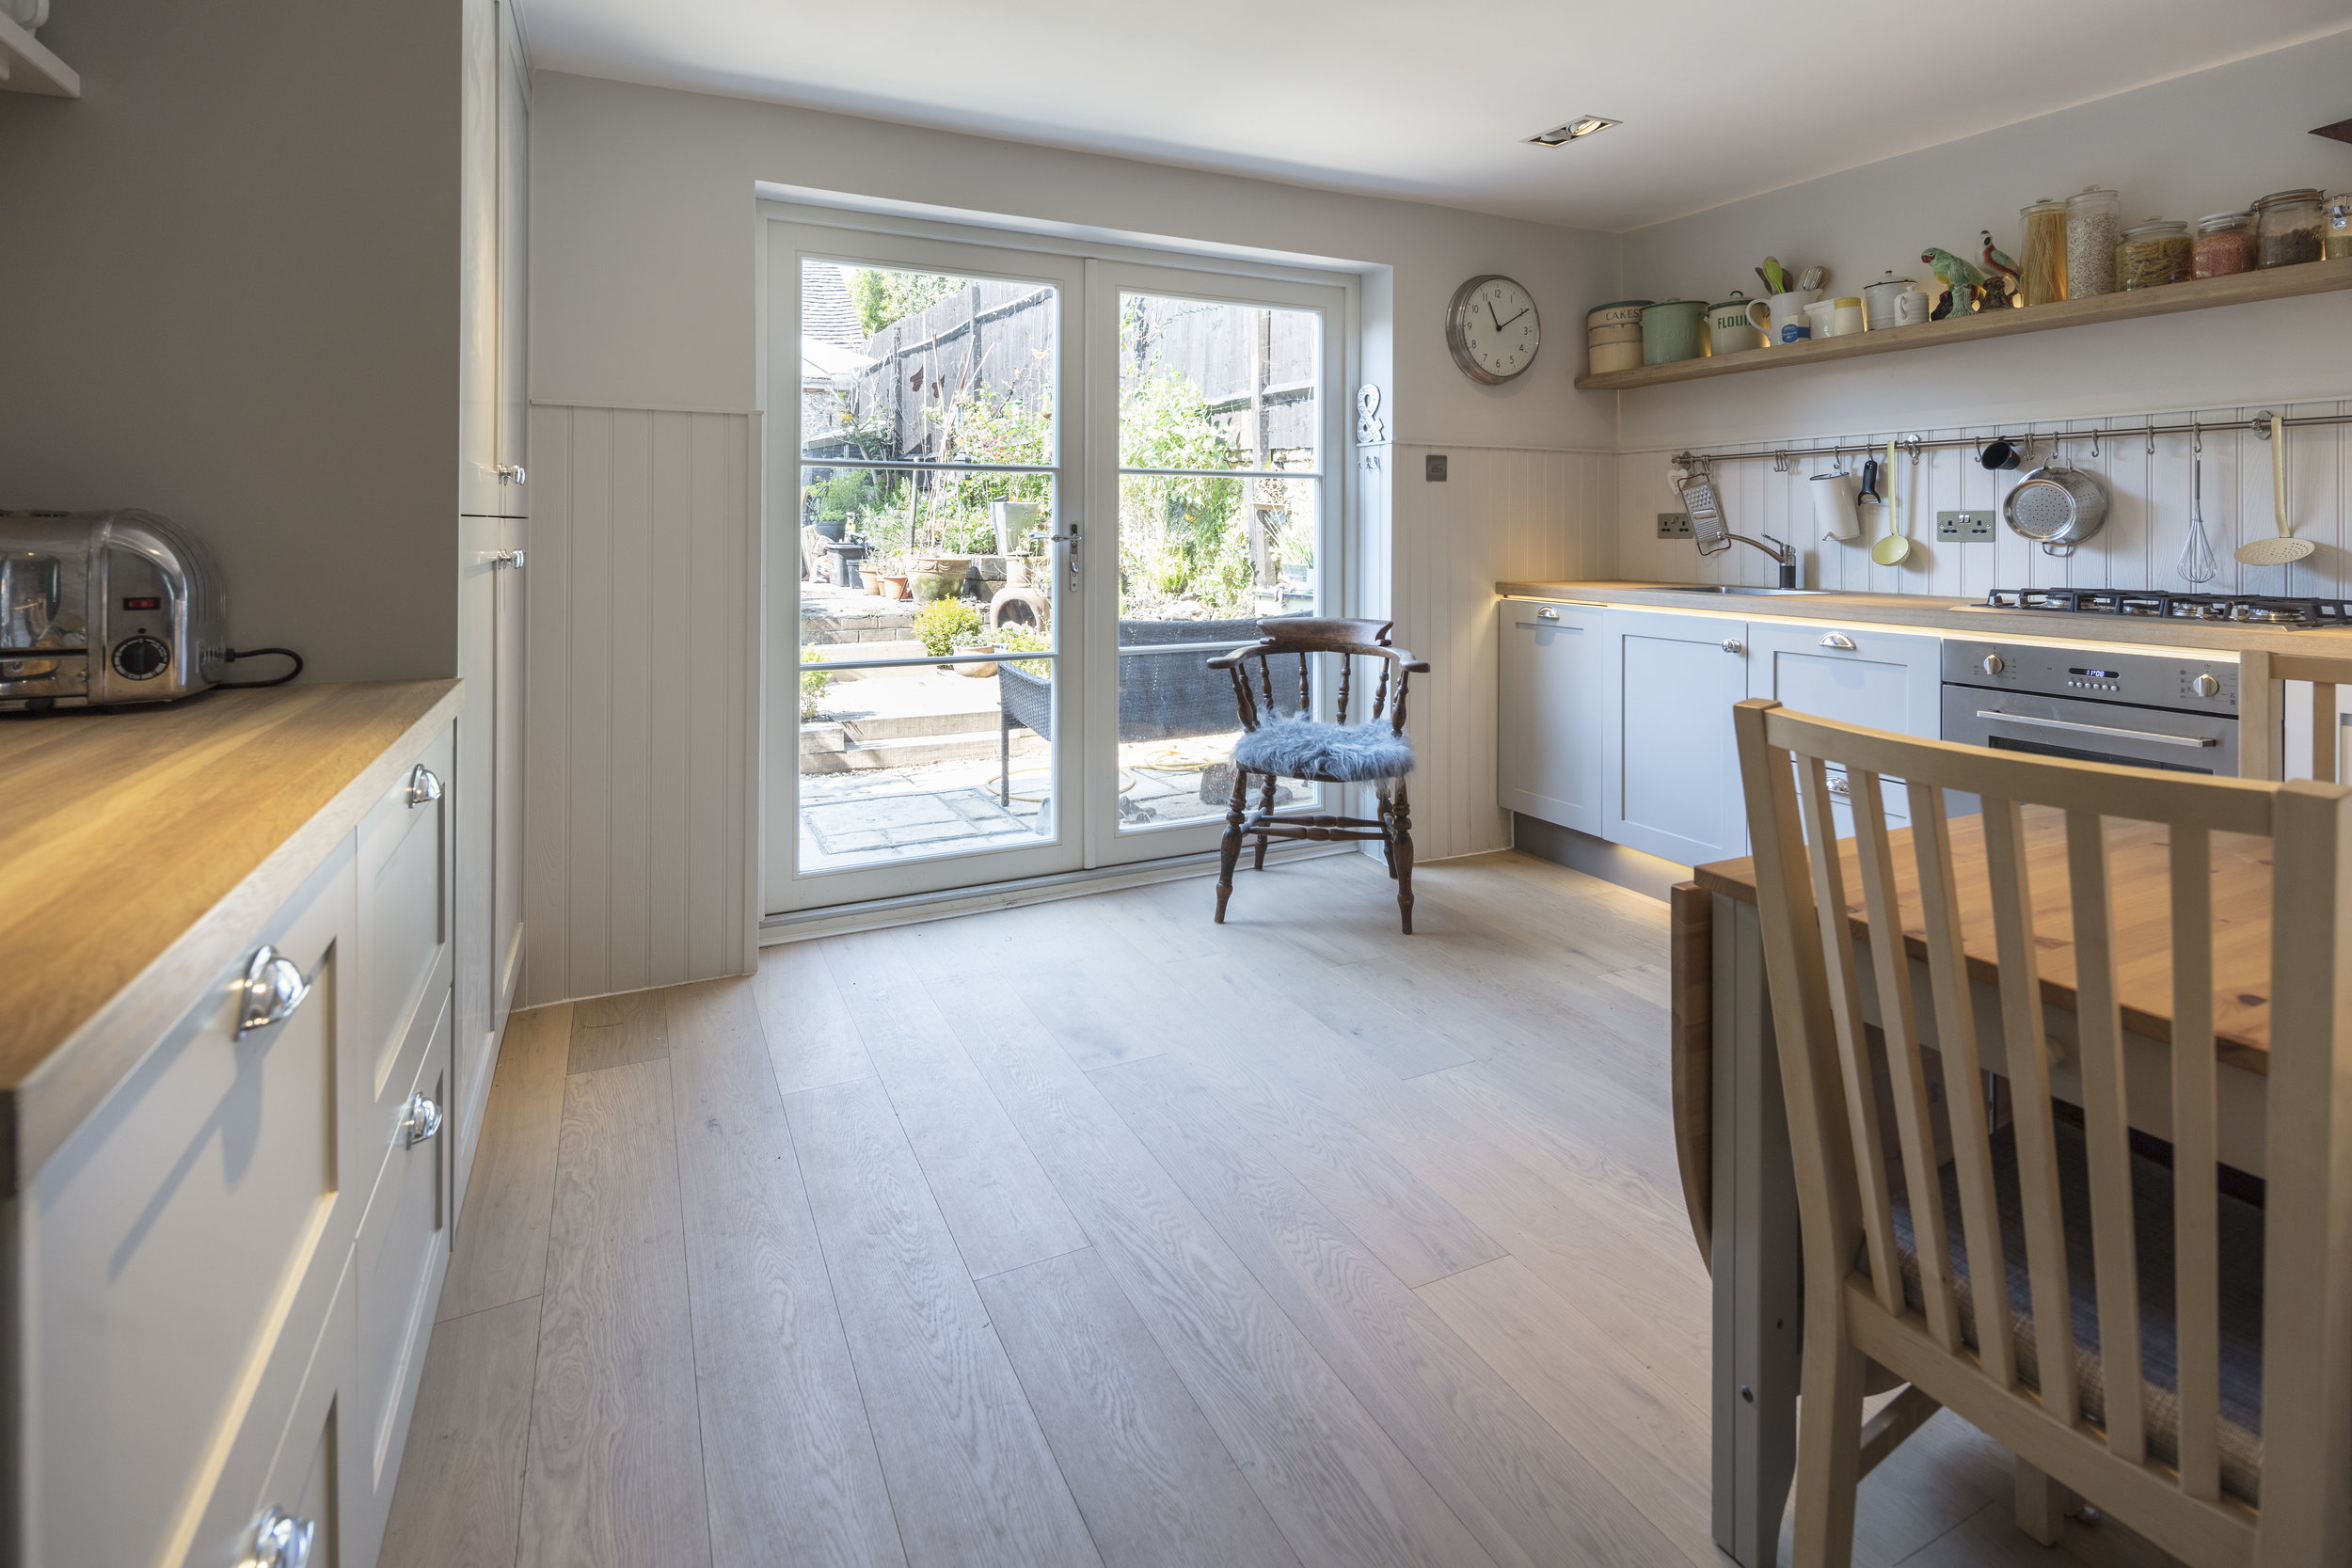 Quality guaranteed. - All of our kitchens are manufactured from A grade medium density fibreboard, which is more durable to heat and moisture, ensuring your kitchens lasts a lifetime without any warping or movement. Lucas Grant Kitchens also come with a 10 year quality guarantee.